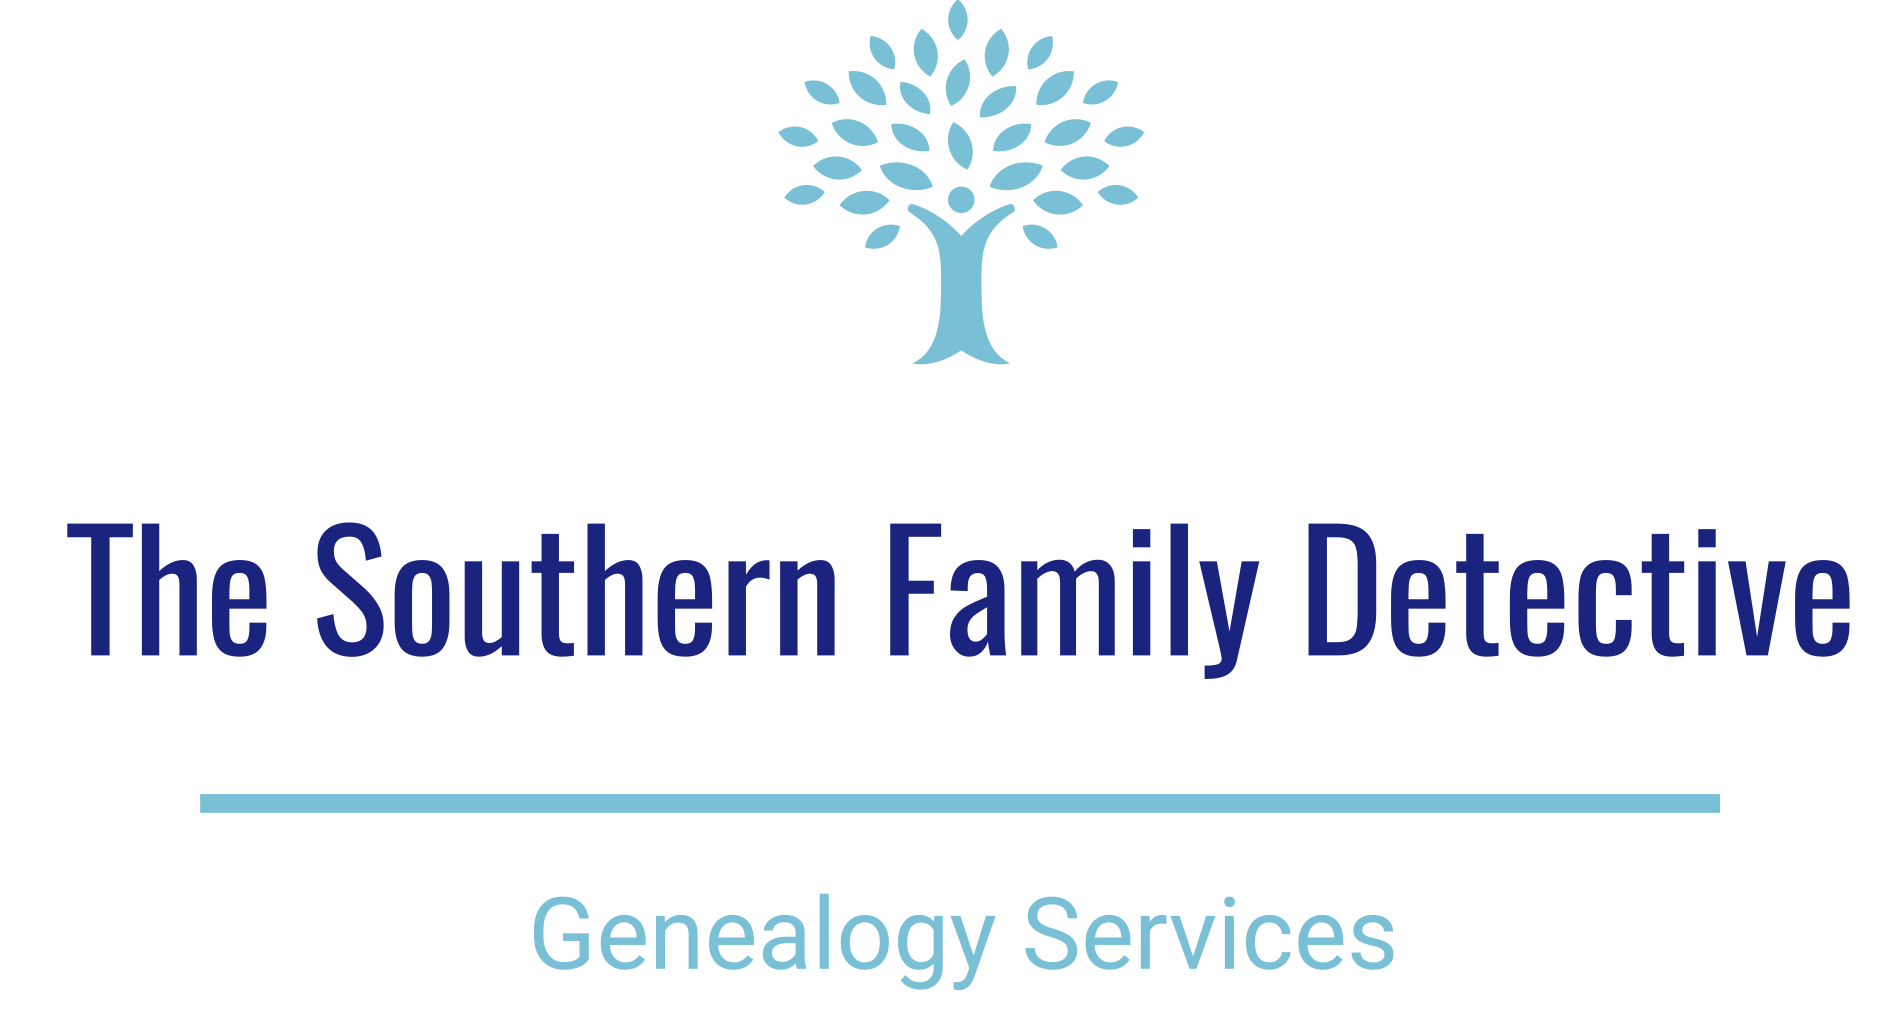 The Southern Family Detective